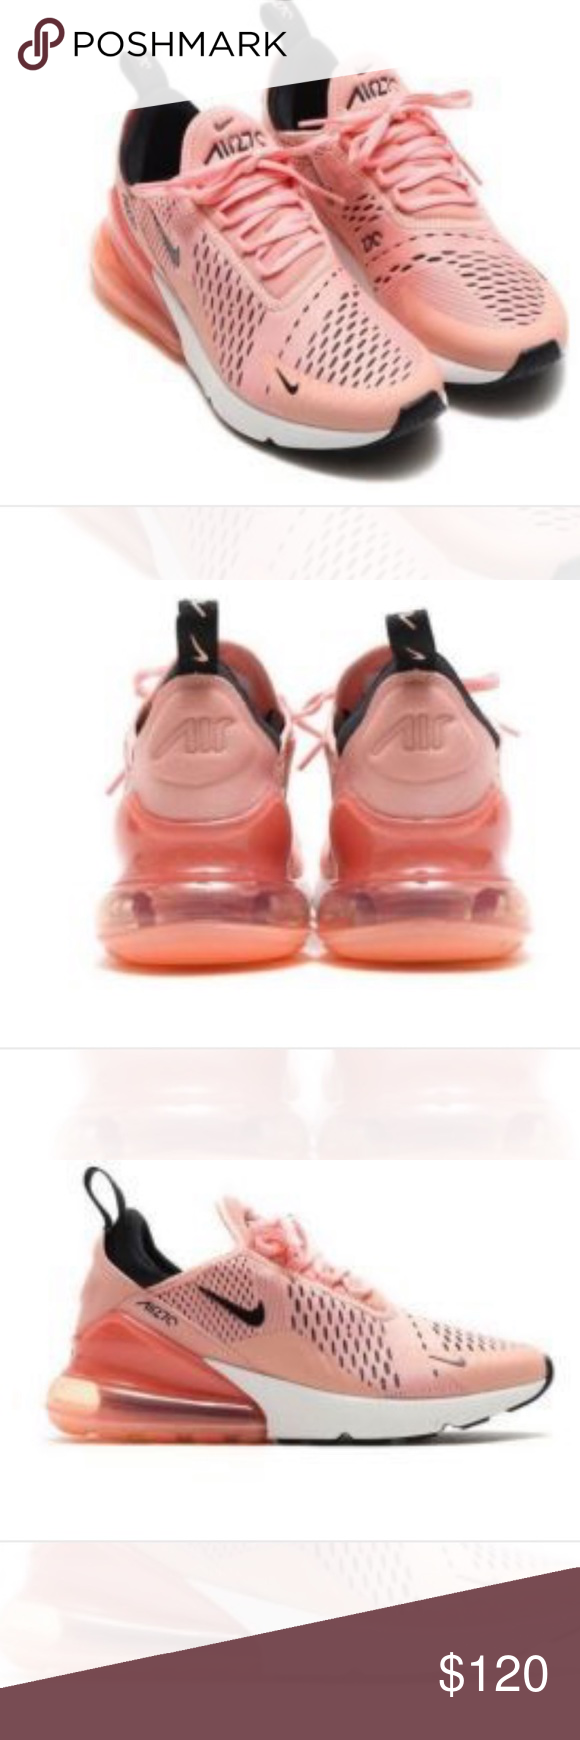 Nike Air Max 270 Women S Light Orange Pink Boutique Nike Air Max